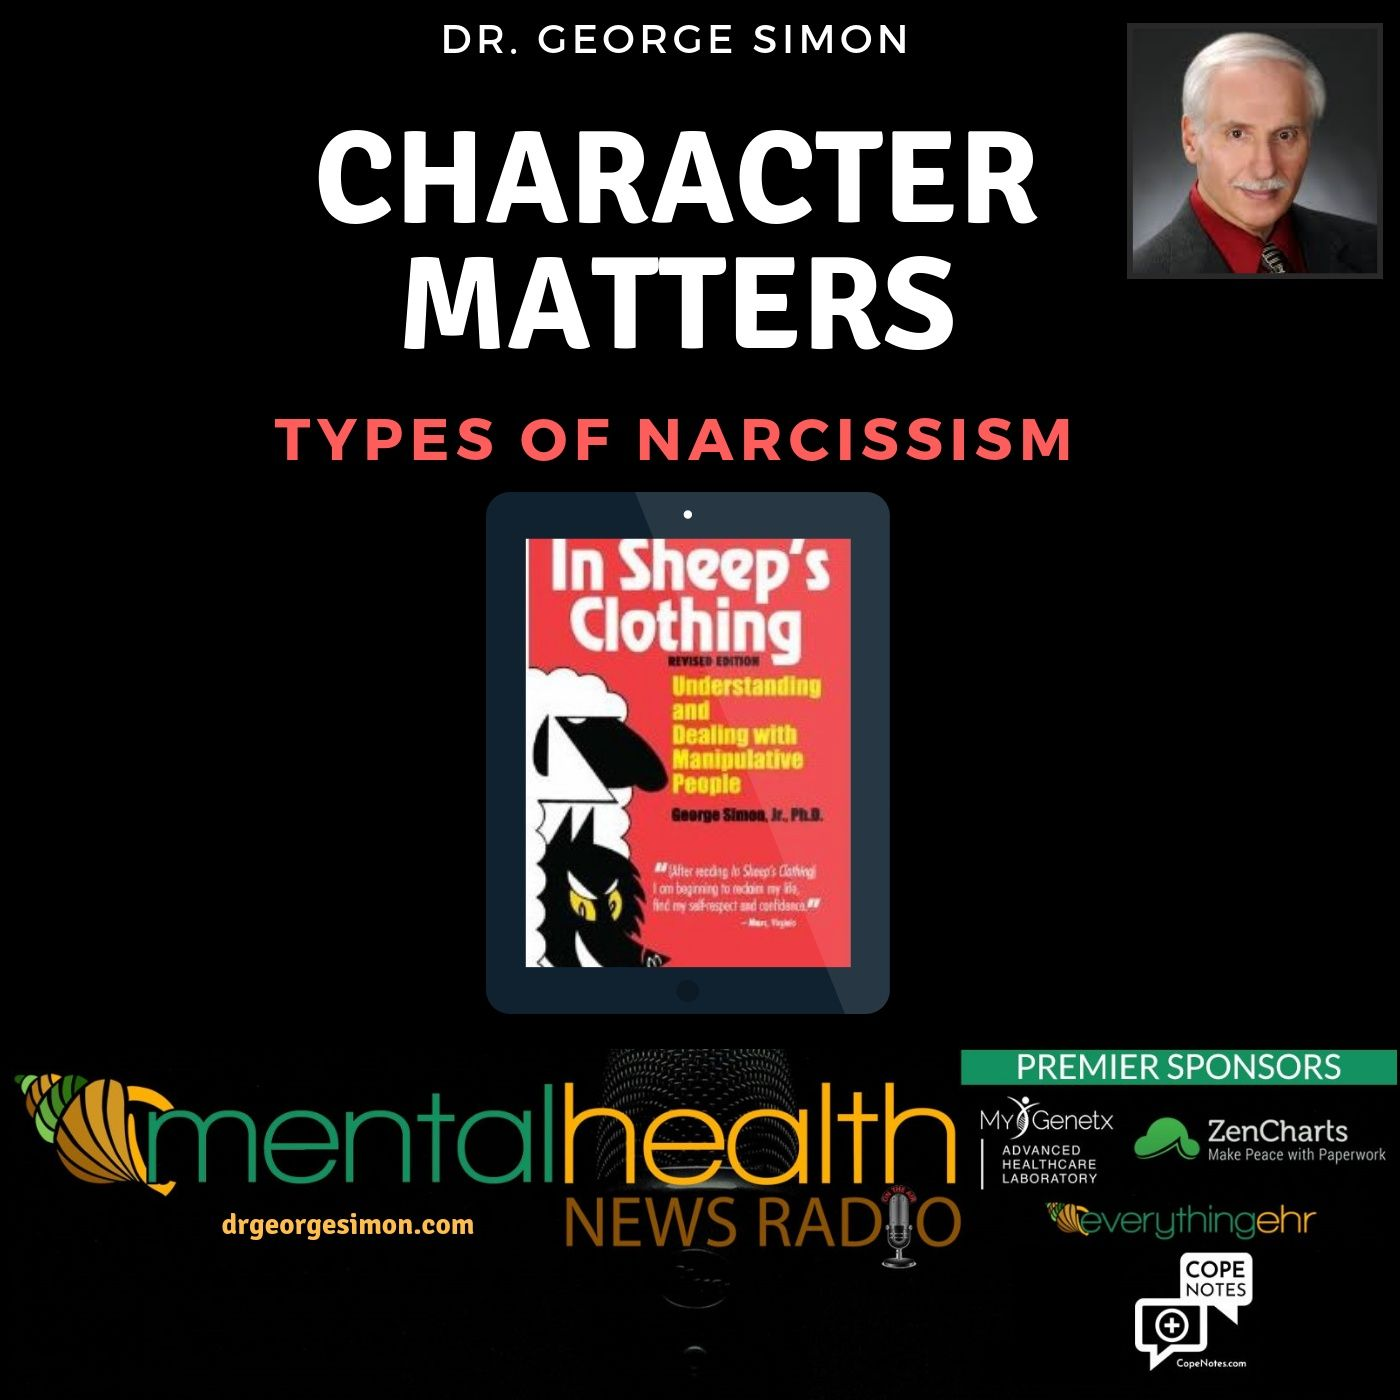 Mental Health News Radio - Character Matters with Dr. George Simon: Types of Narcissism